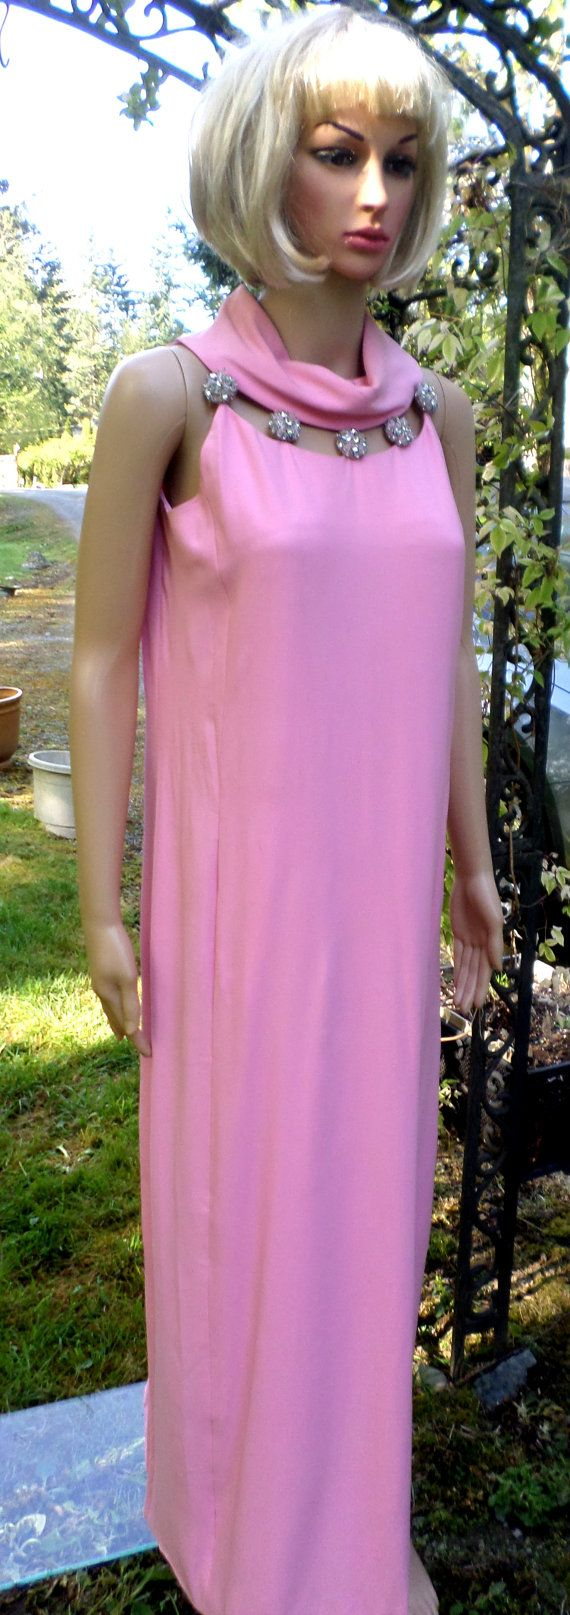 Vintage 60's Mod Pink Cowl Collar Halter Evening by Joiedeglam